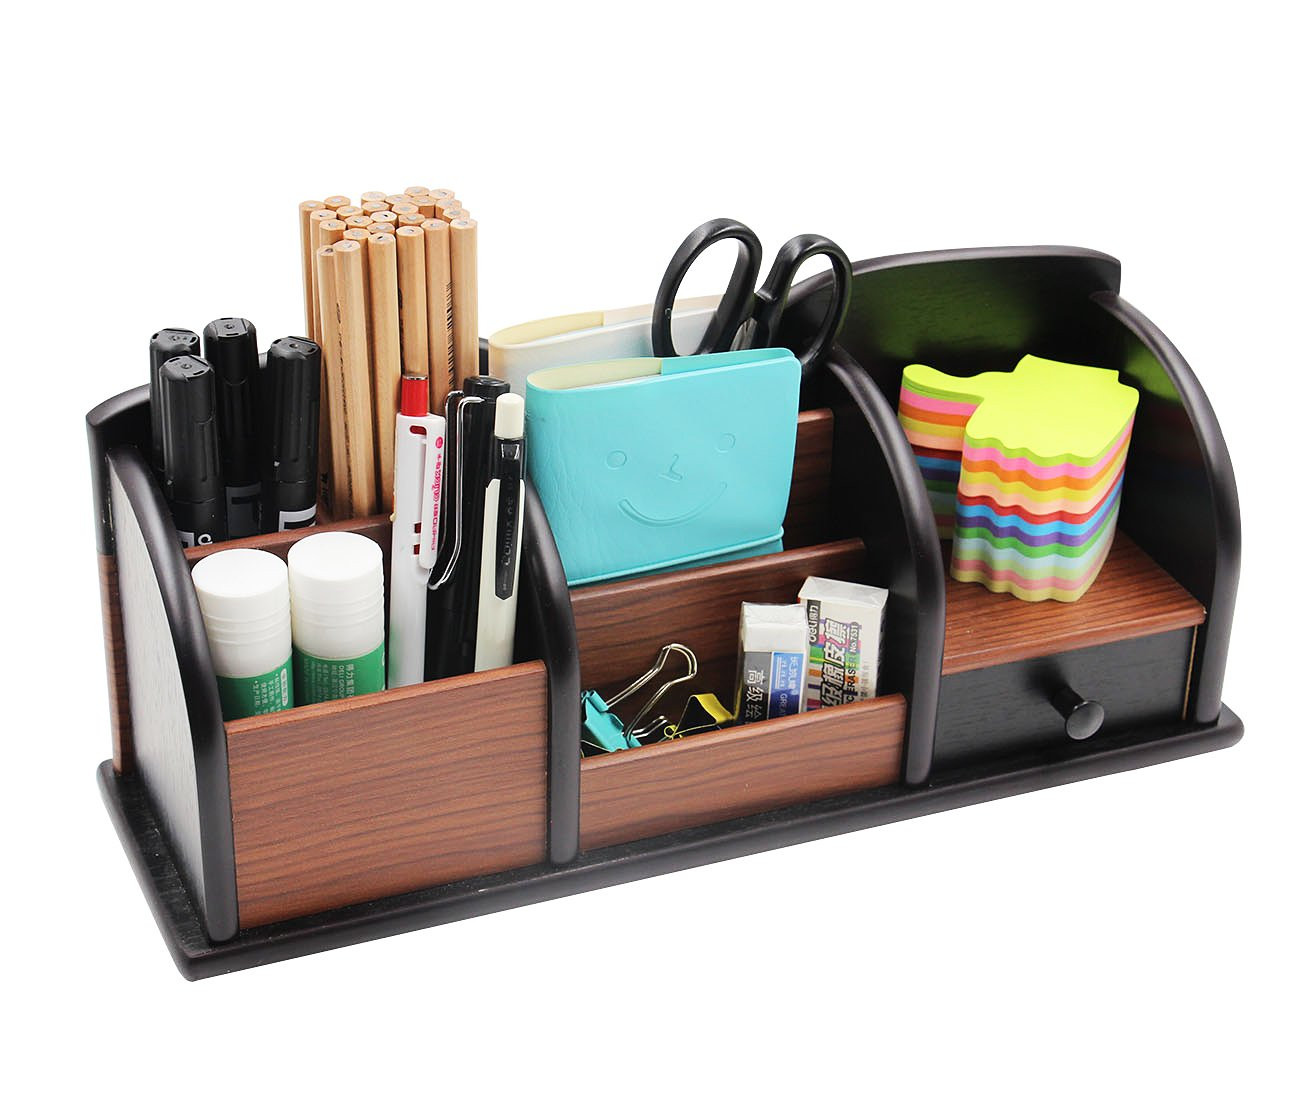 Desk Caddy organizer Unique Pag Fice Supplies Wood Desk organizer Pen Holder